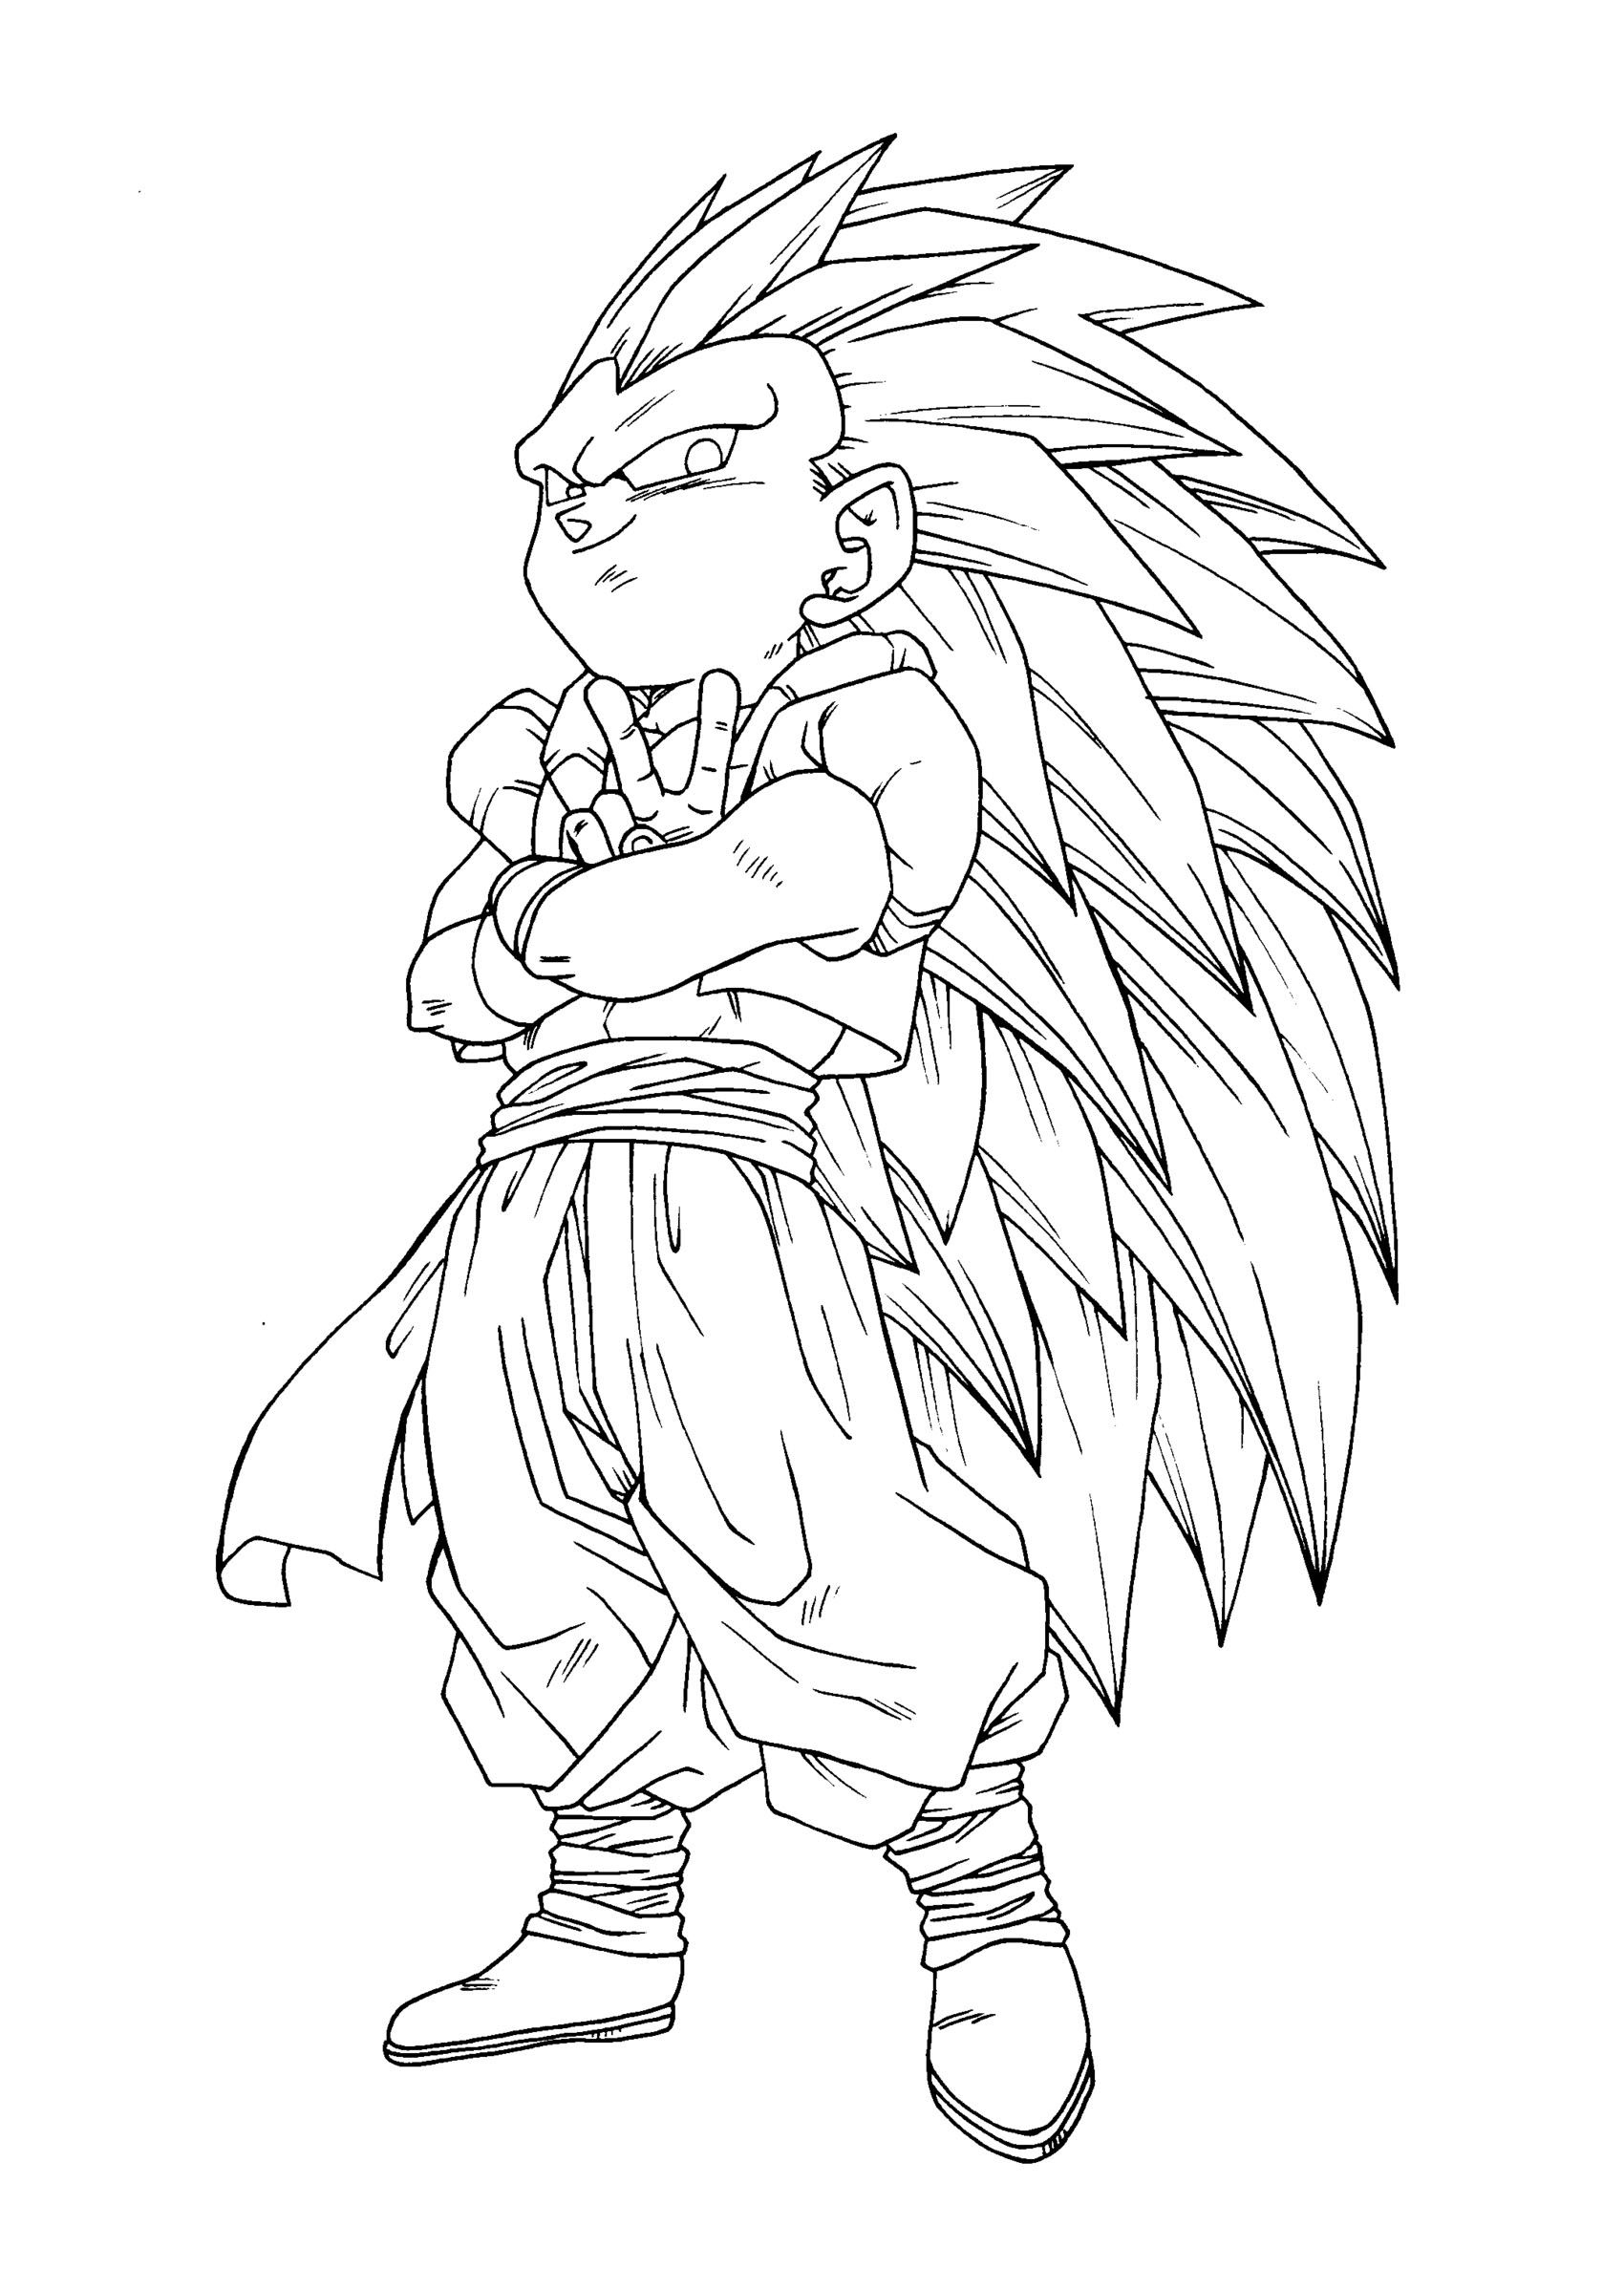 Coloriage Dragon Ball Z Vegeta Super Sayen 3 | Meilleur avec Coloriage Dragon Ball Z Super